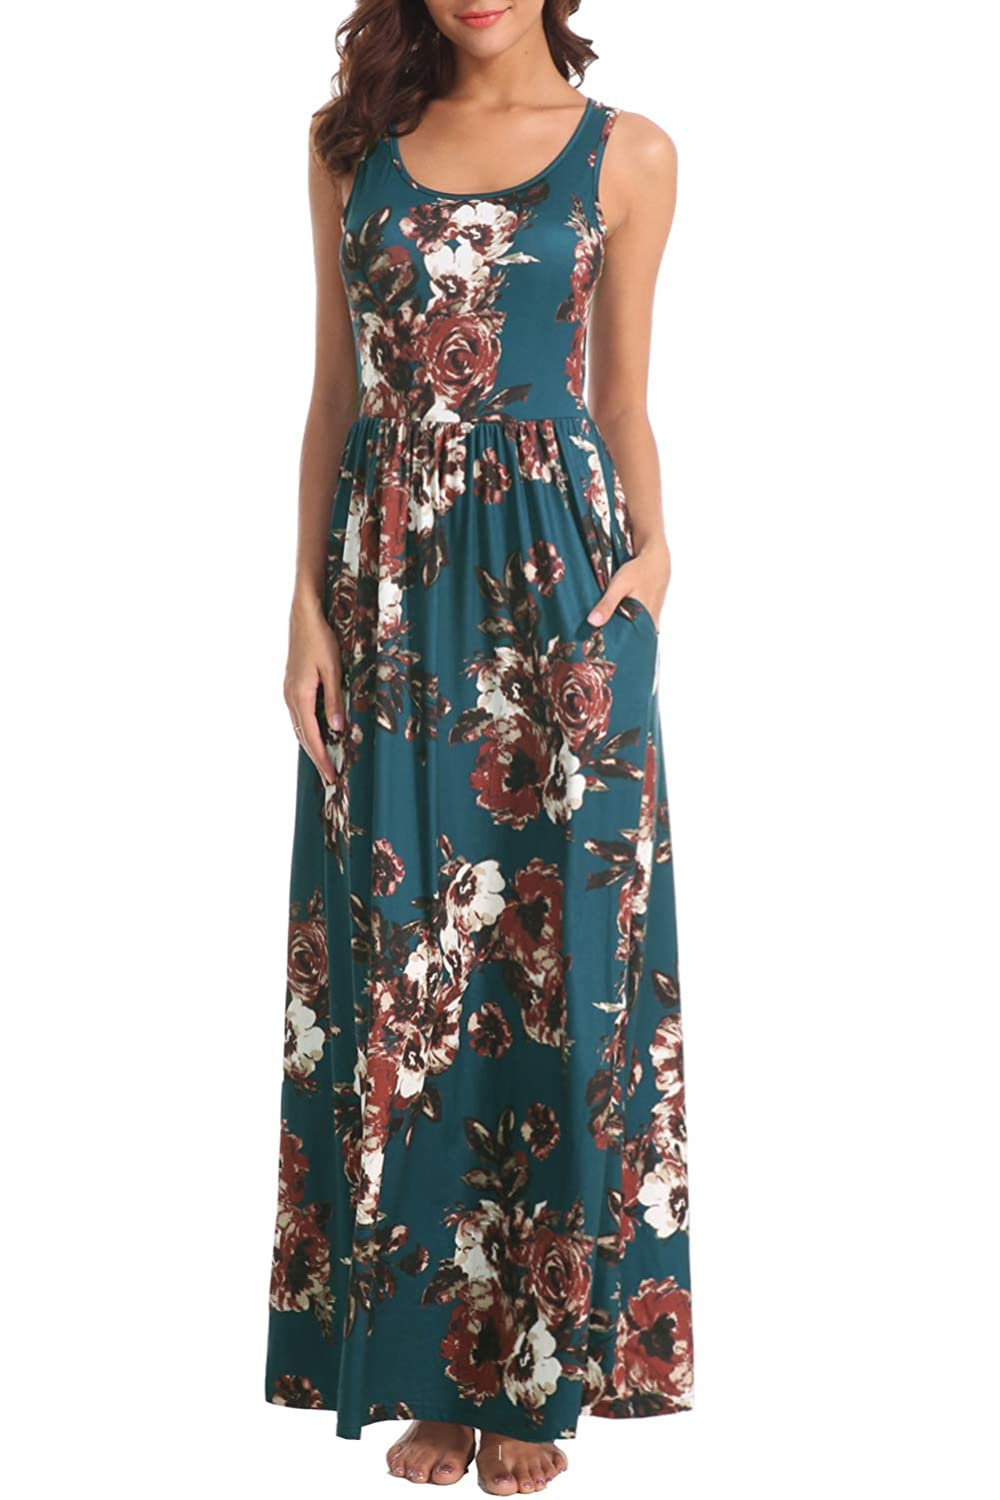 c1b203a27d Zattcas Women Floral Maxi Dresses Sleeveless Casual Summer Long Dress with  Pockets at Amazon Women's Clothing store: